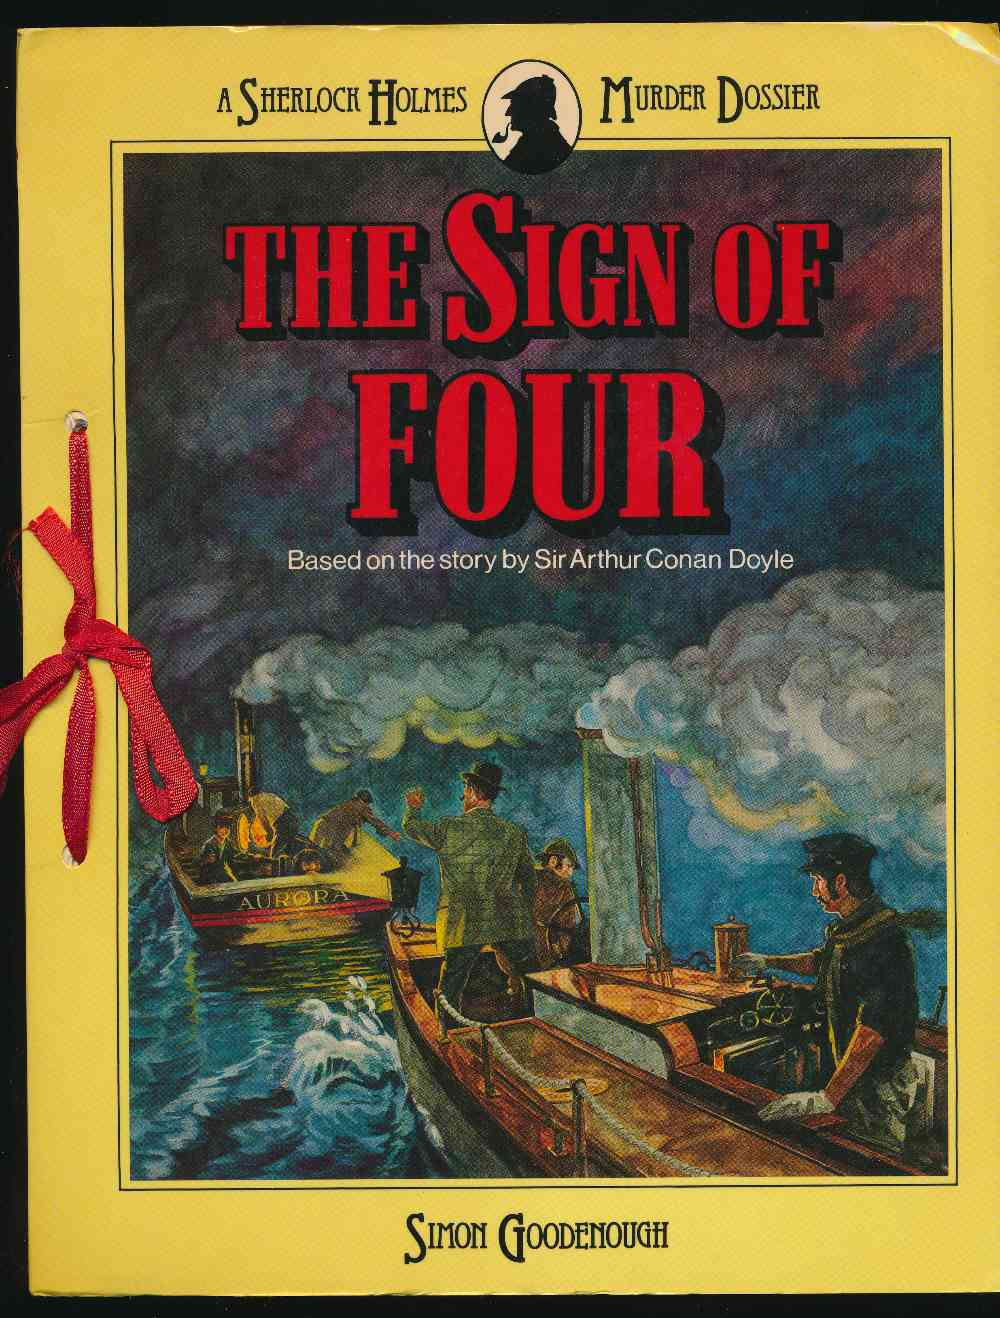 The sign of four : a Sherlock Holmes murder dossier